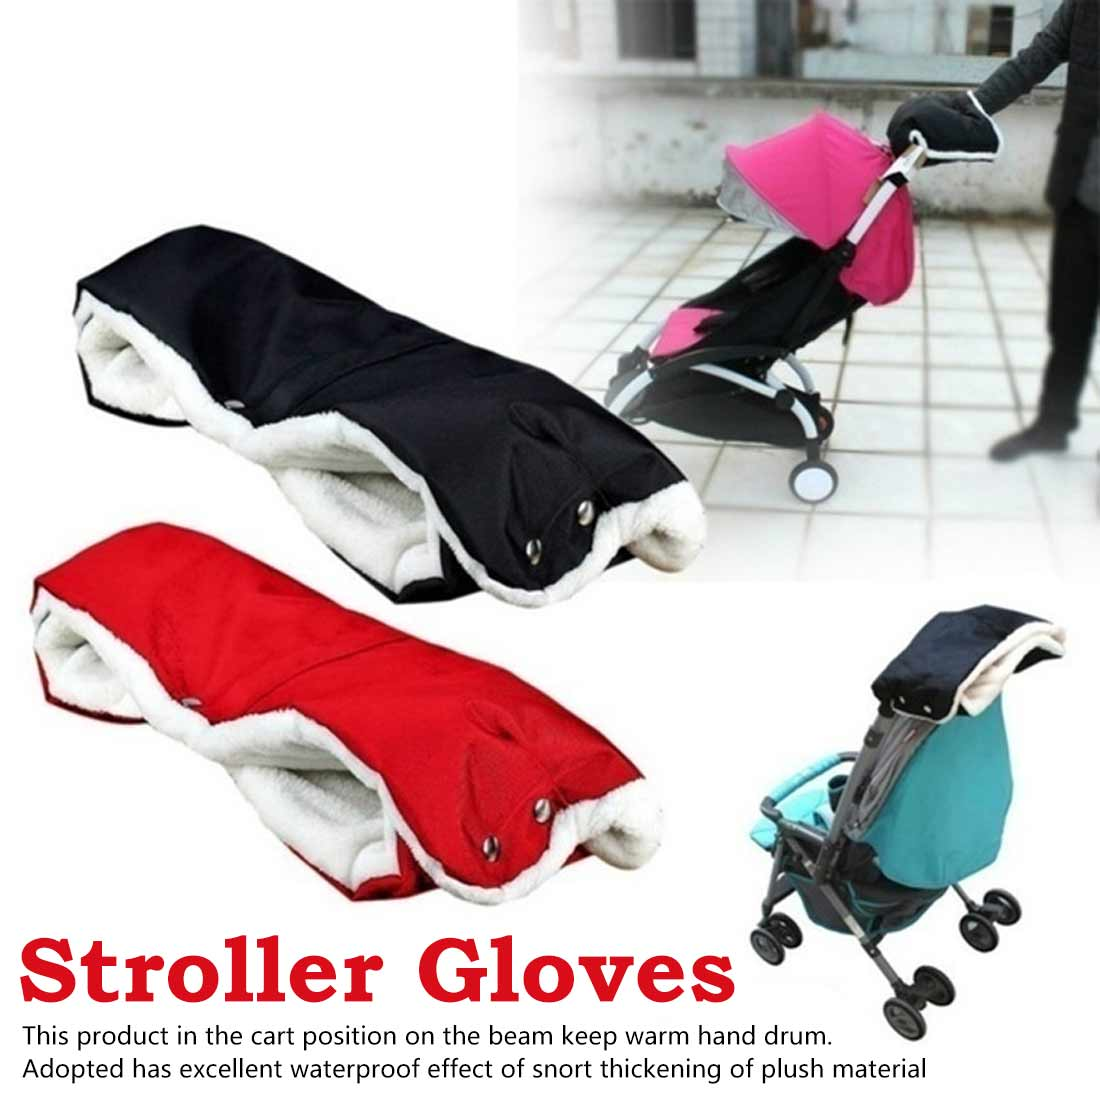 Warmer Winter Pram Clutch Cart Thick Fleece Gloves Kids Baby Pram Stroller Accessory Hand Muff Waterproof Gloves